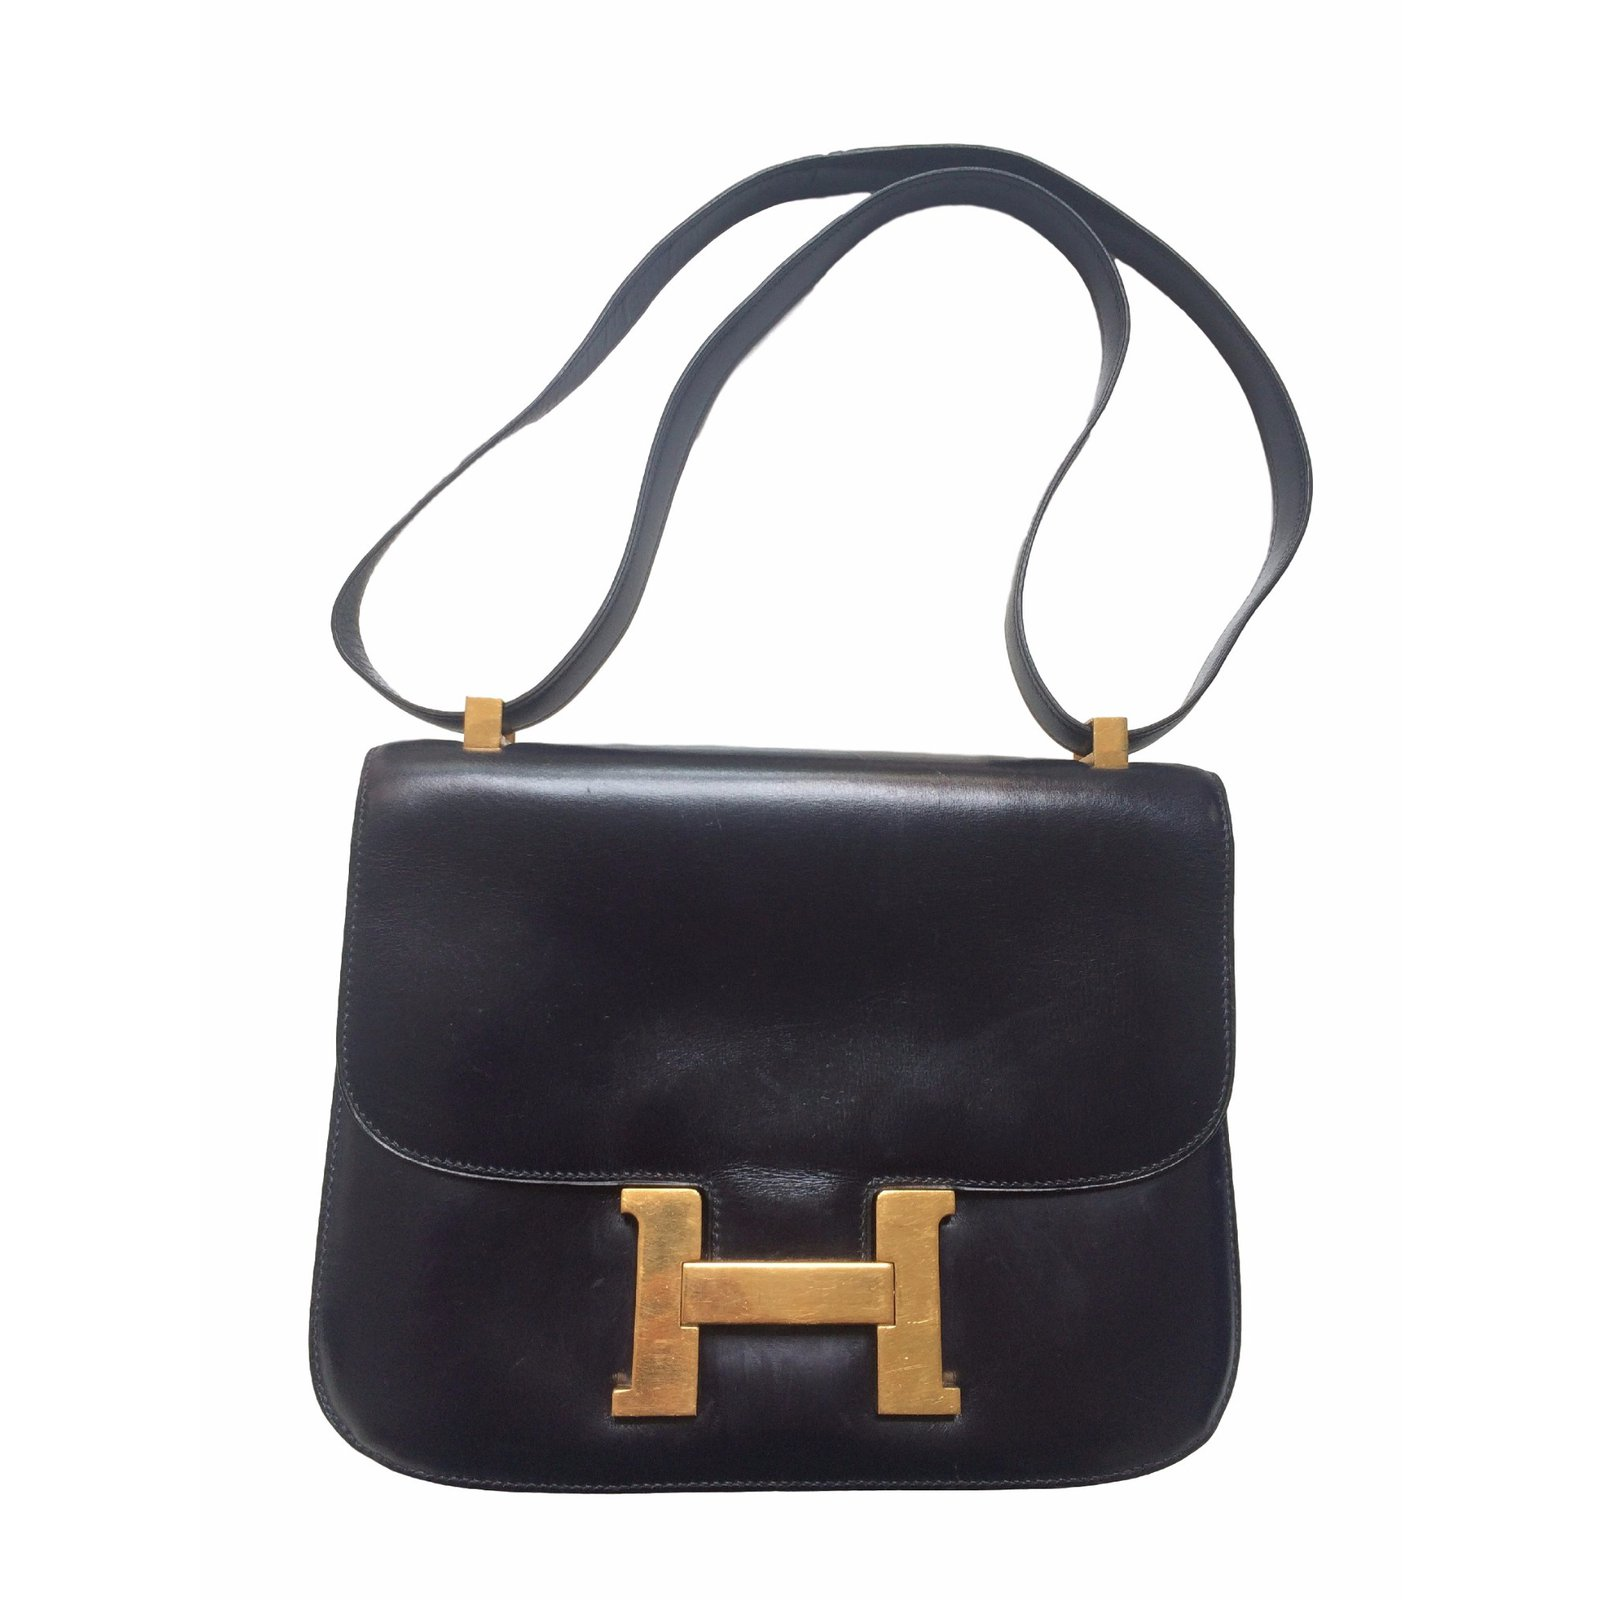 hermes sac bandouli re birkins bag price. Black Bedroom Furniture Sets. Home Design Ideas